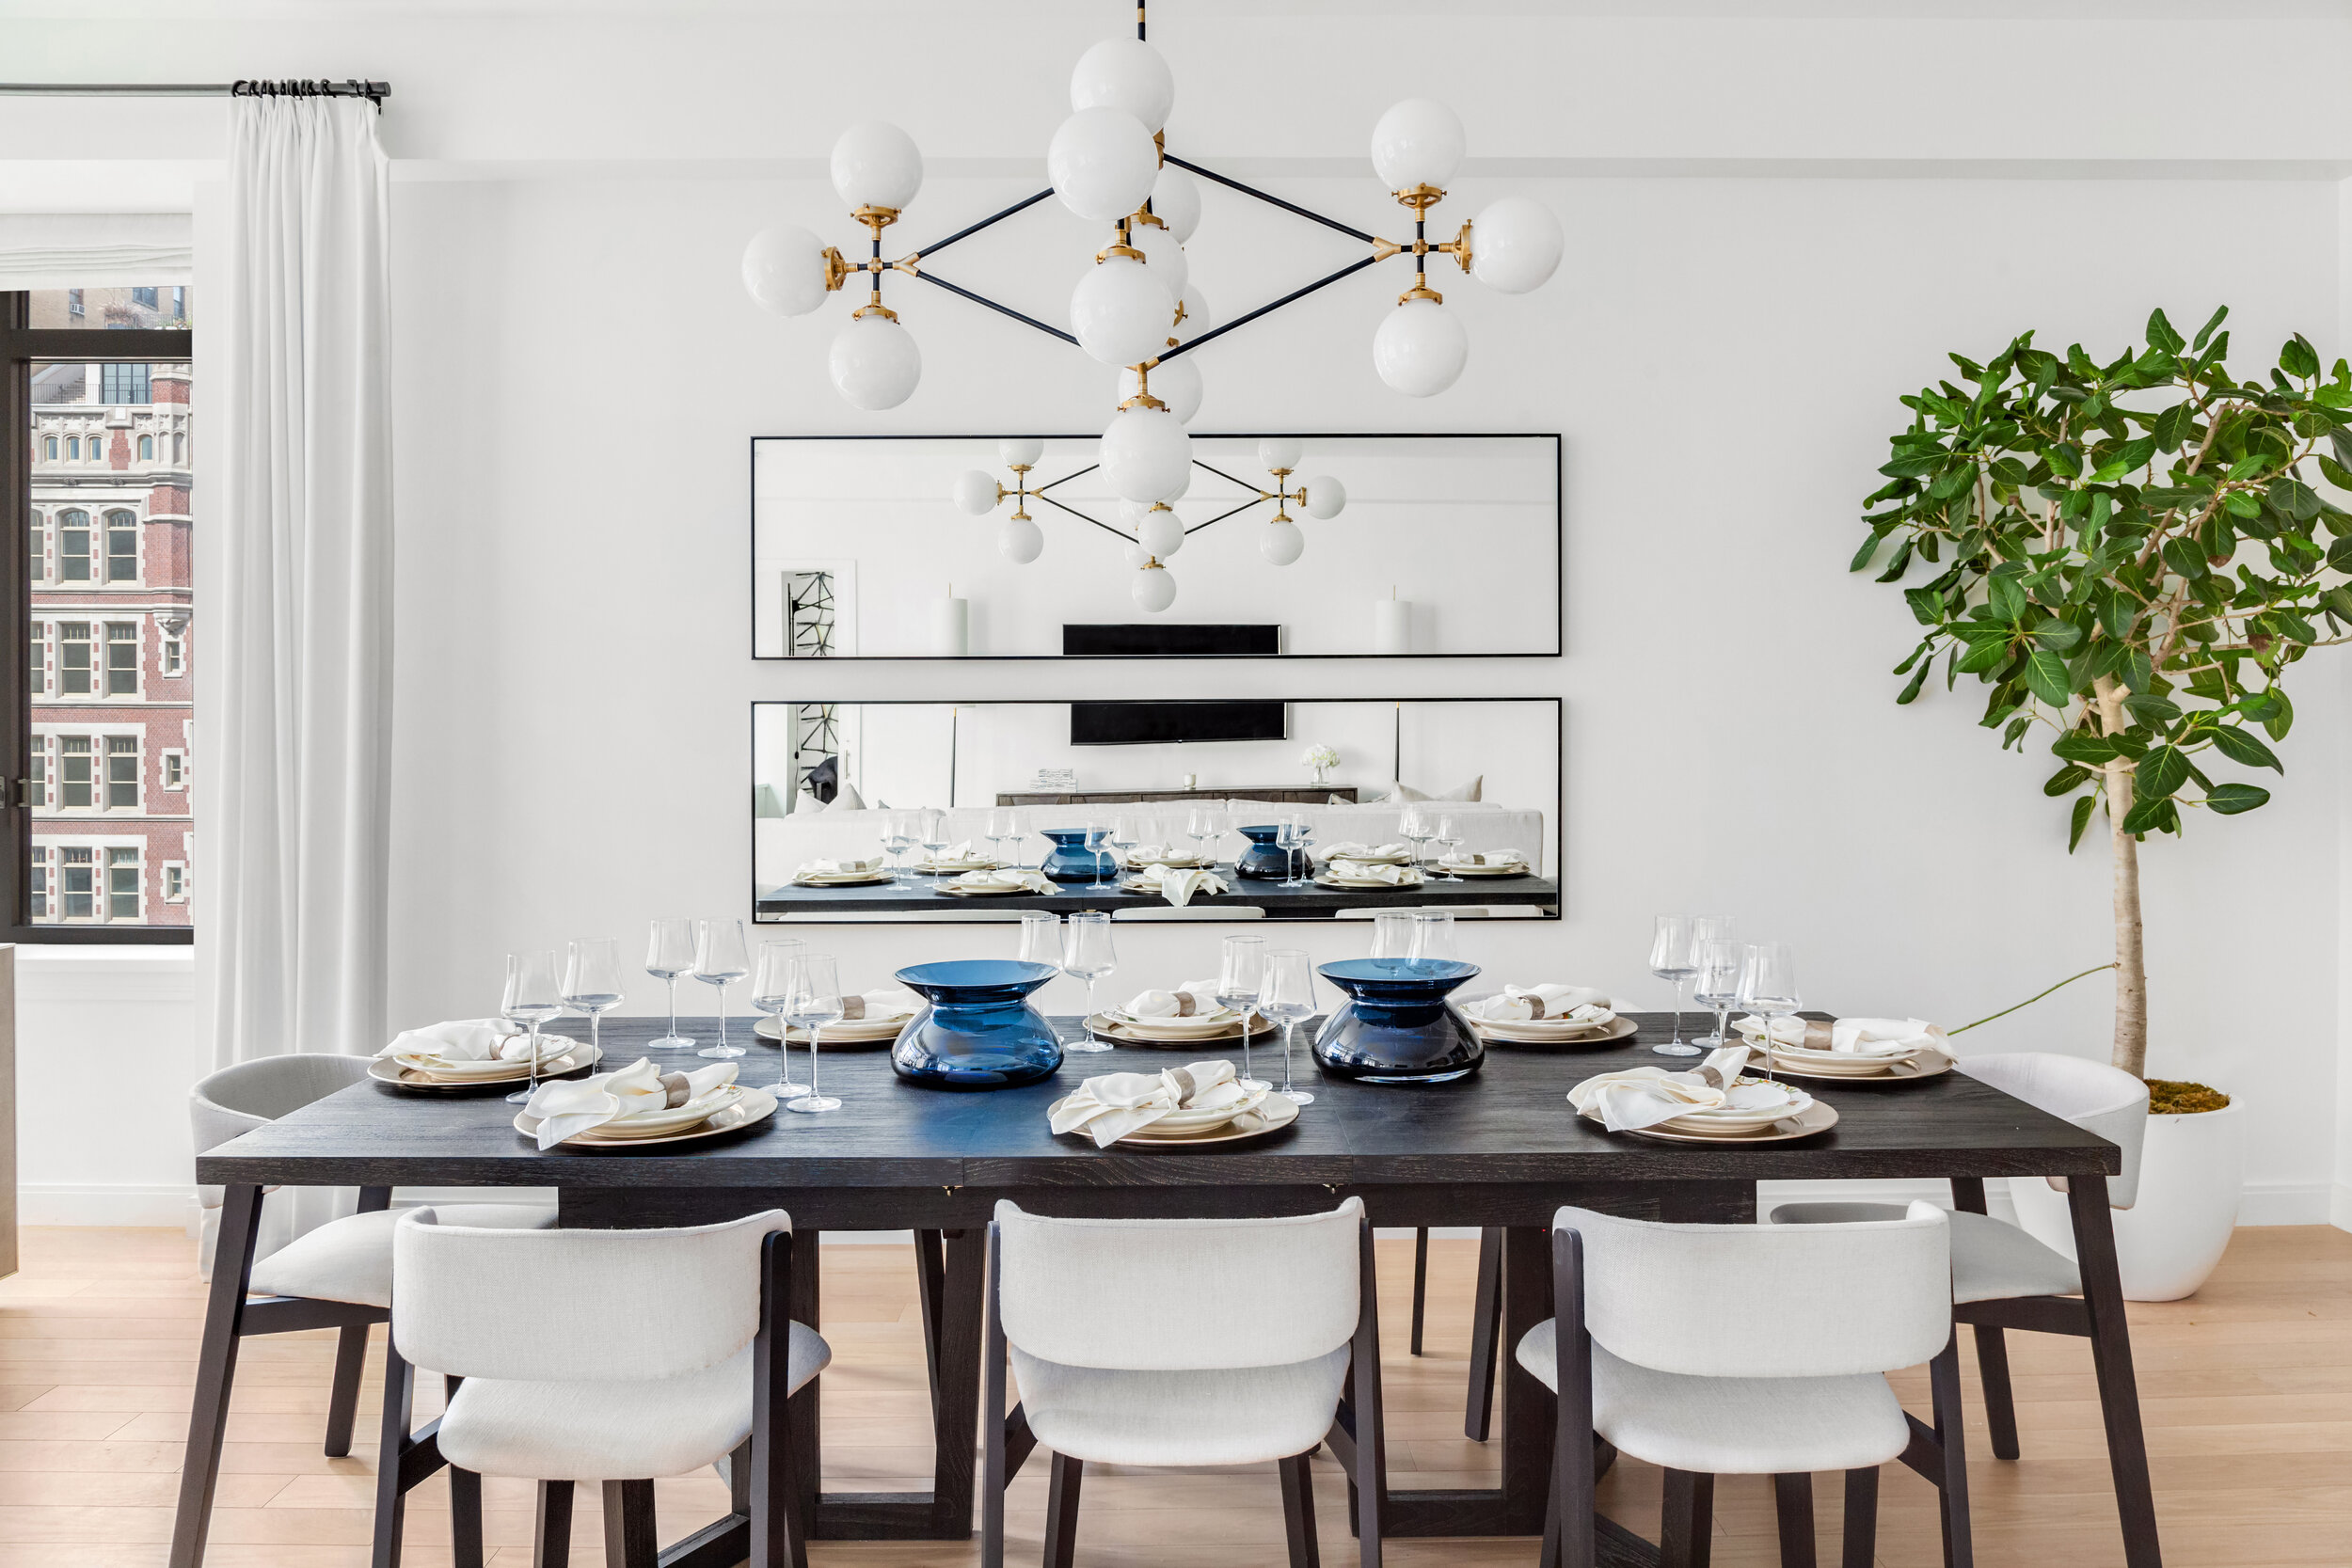 6A Dining Room High Res.jpg